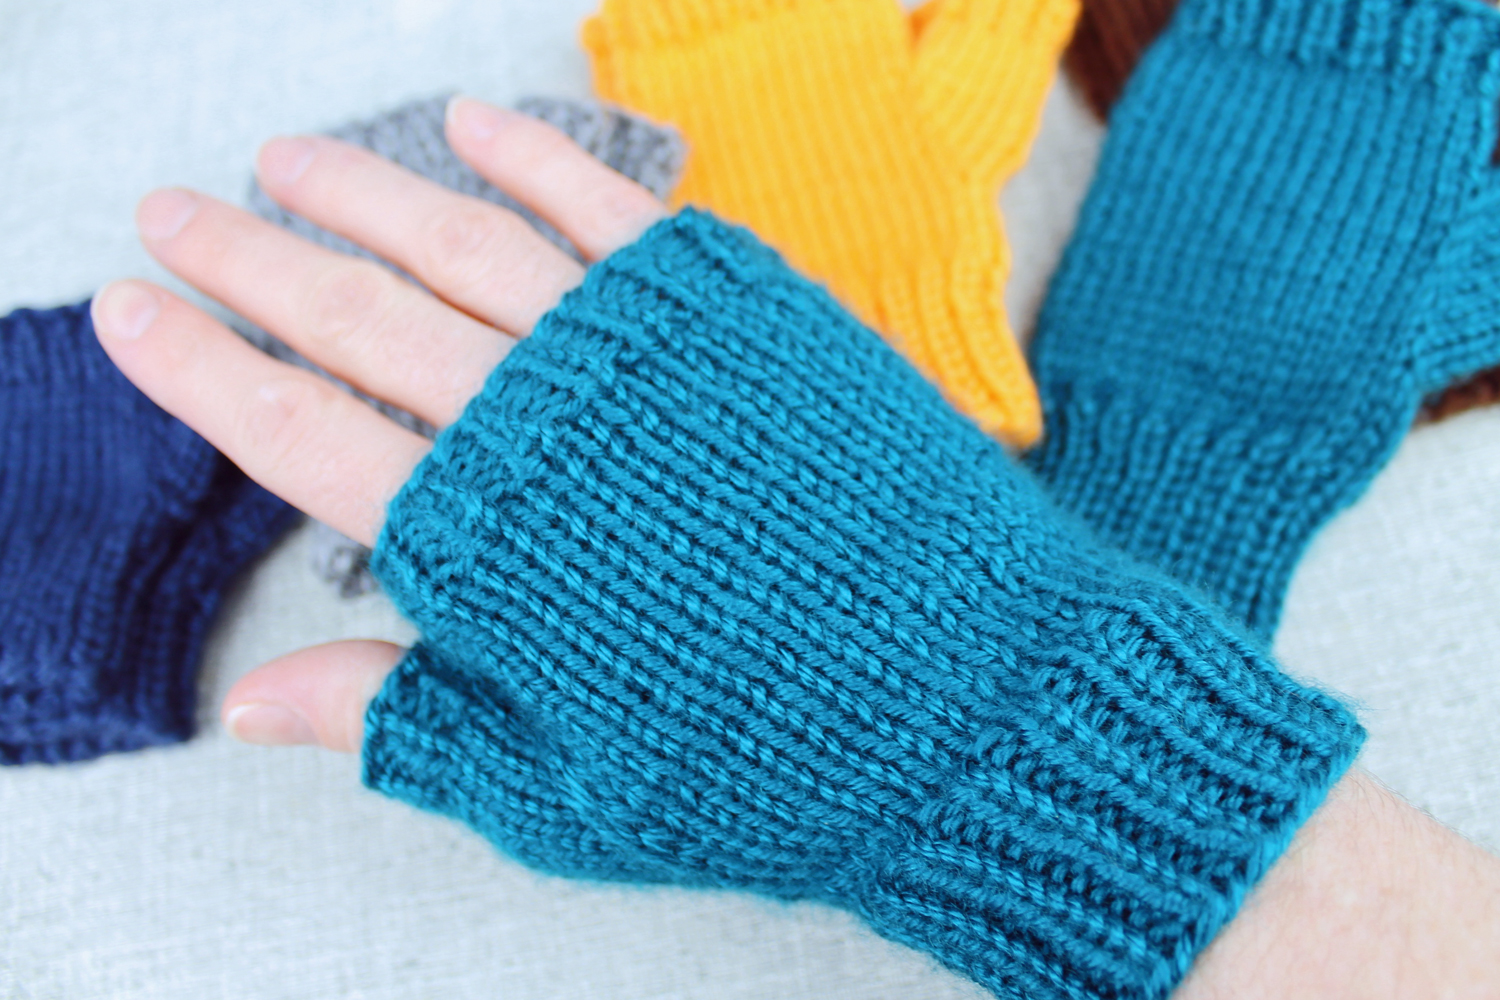 Simple Fingerless Glove Knitting Pattern - PurlsAndPixels